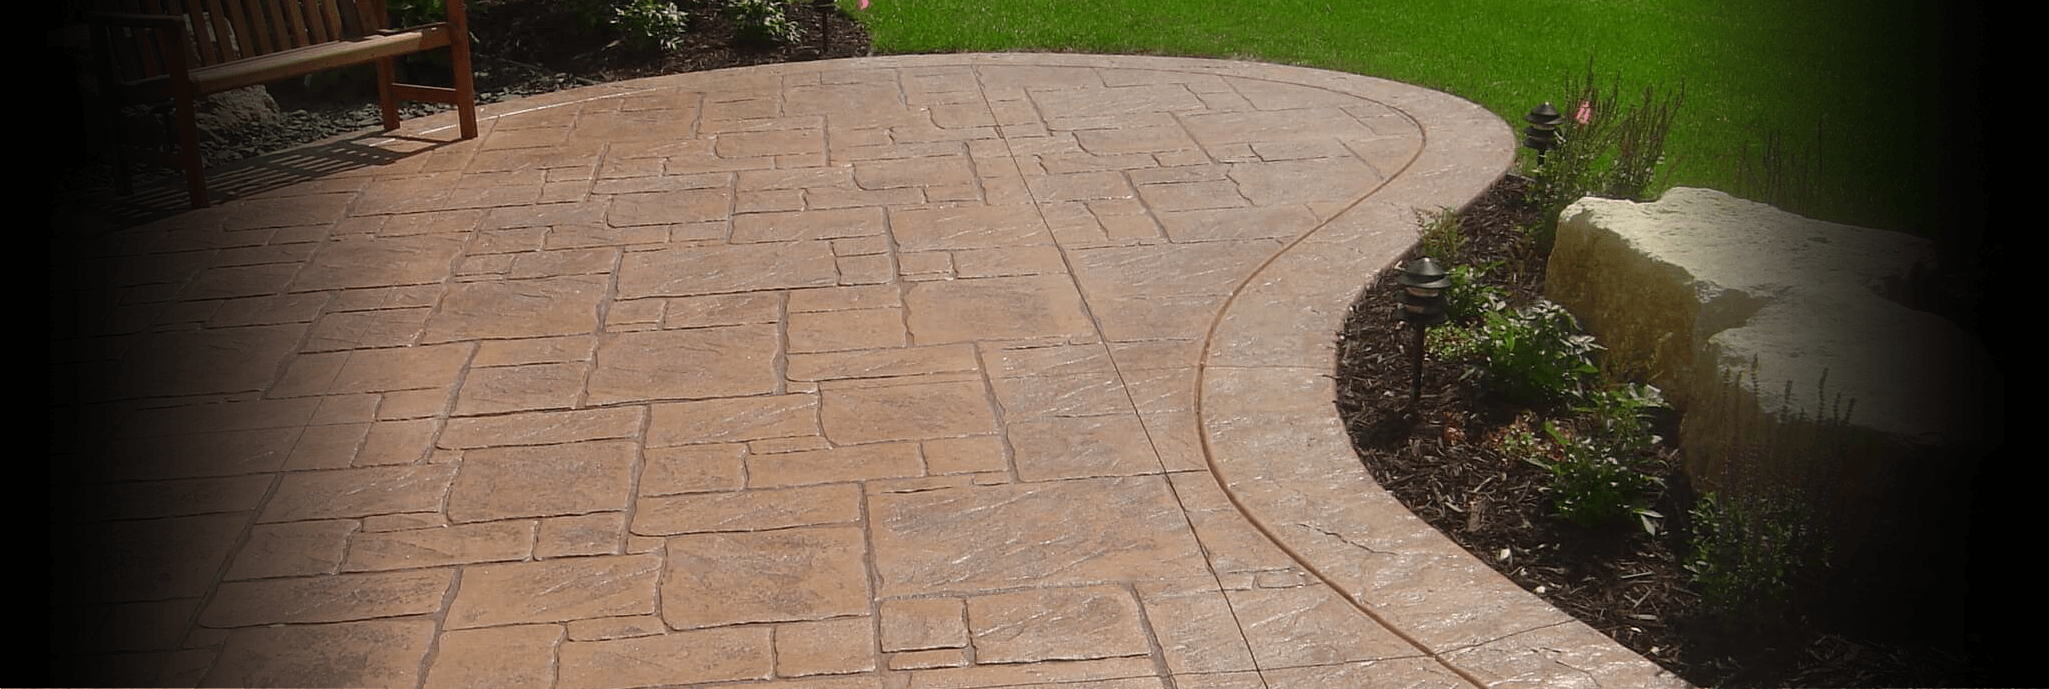 md concrete standard concrete stamped colored concrete